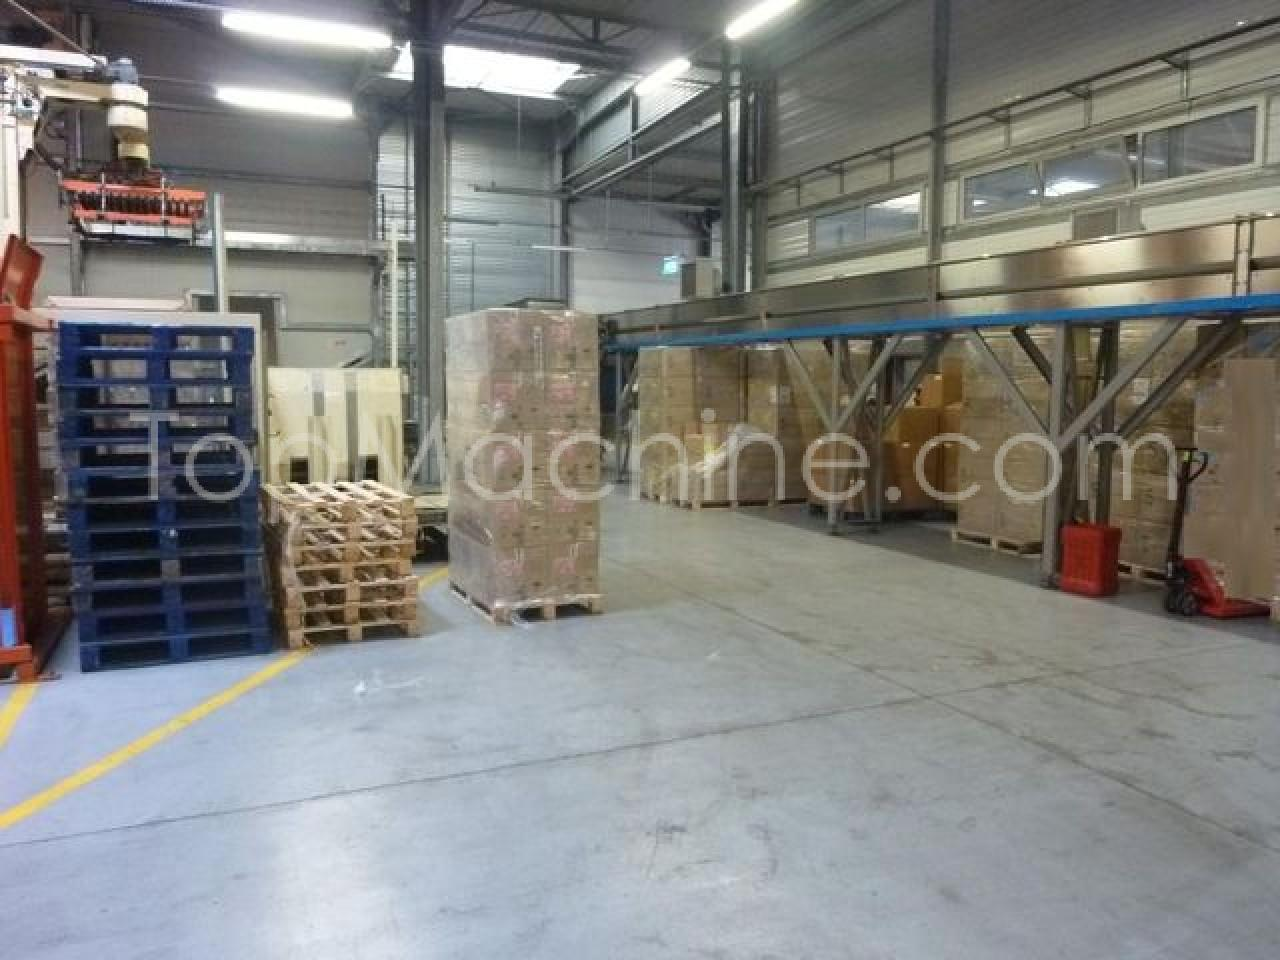 Used Lanfranchi NTR- 2 Beverages & Liquids Miscellaneous